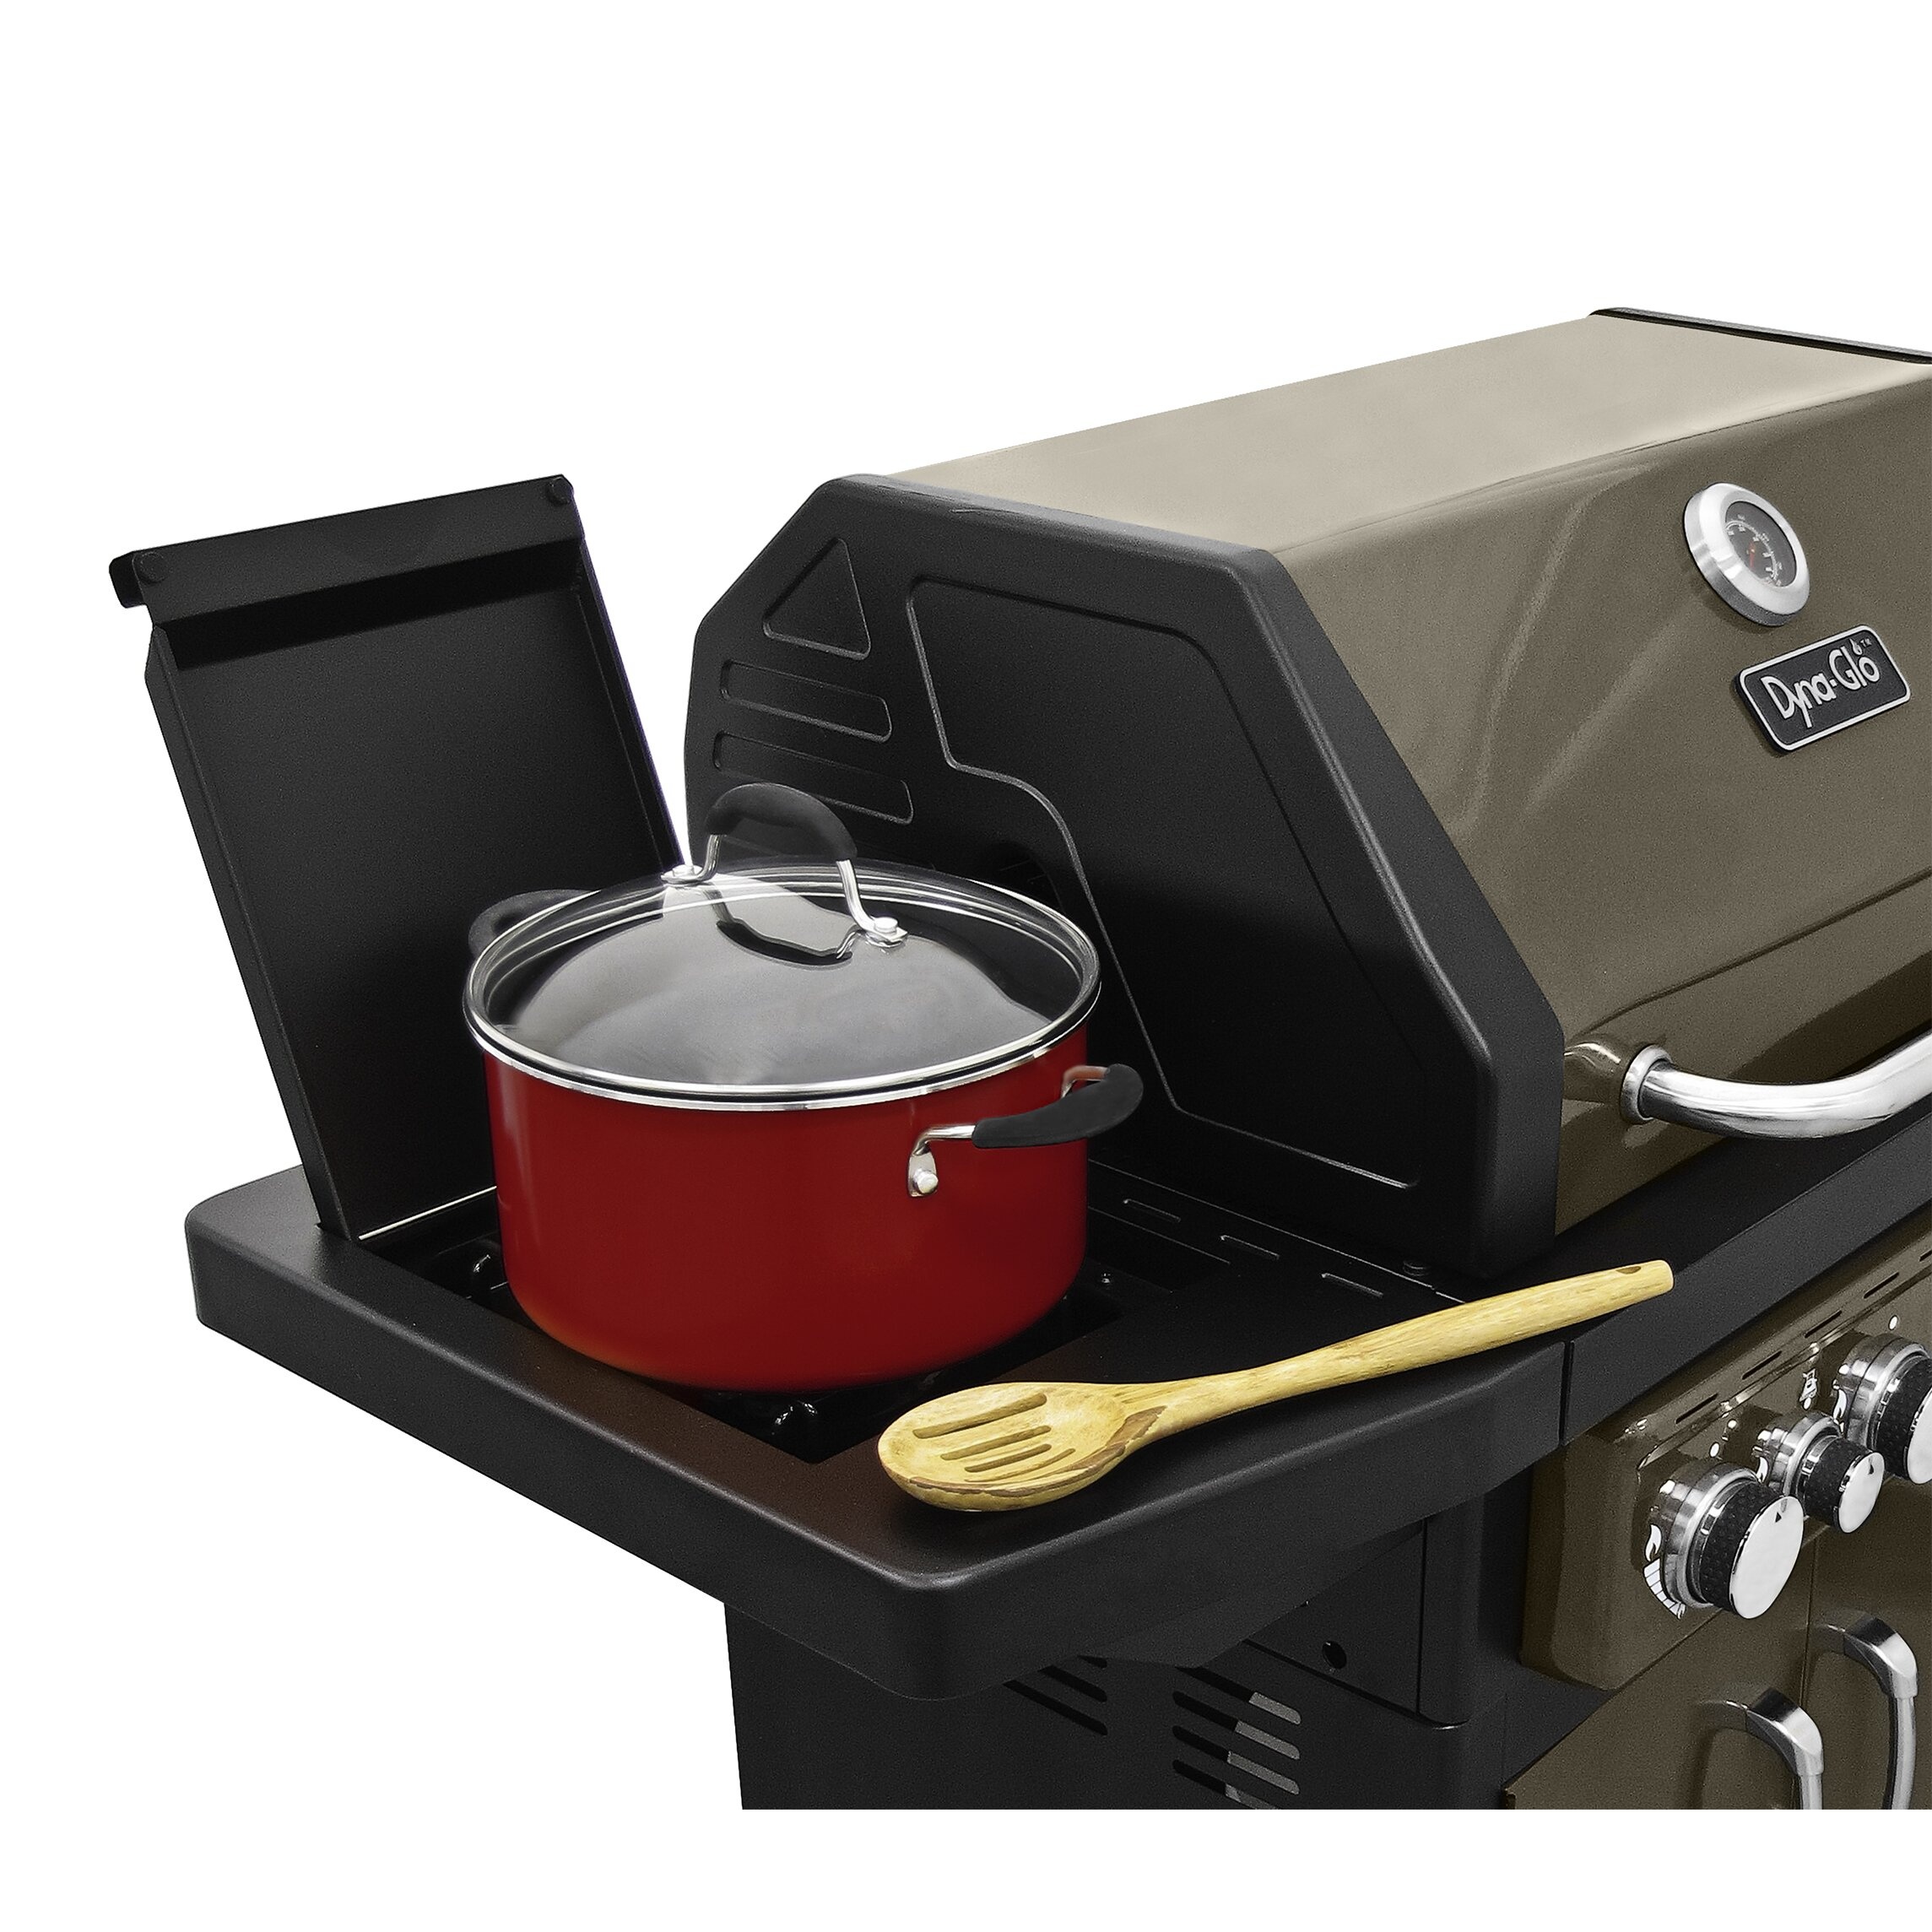 Dyna Glo 4 Burner Gas Grill With Side Burner And Electric